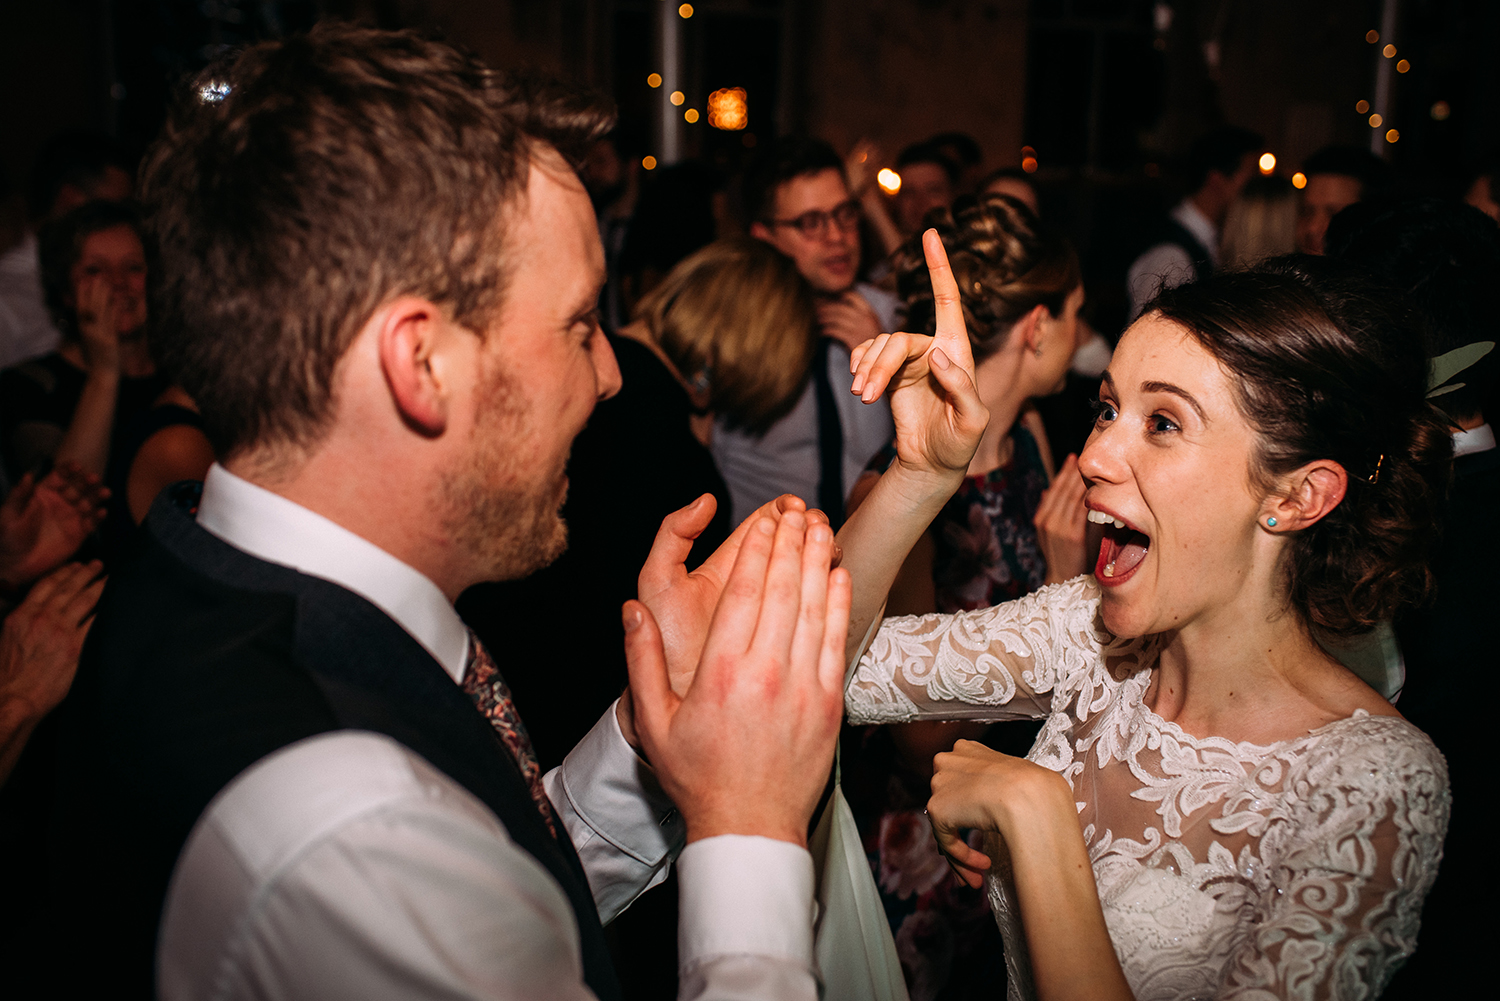 bride and groom dancing among the guests